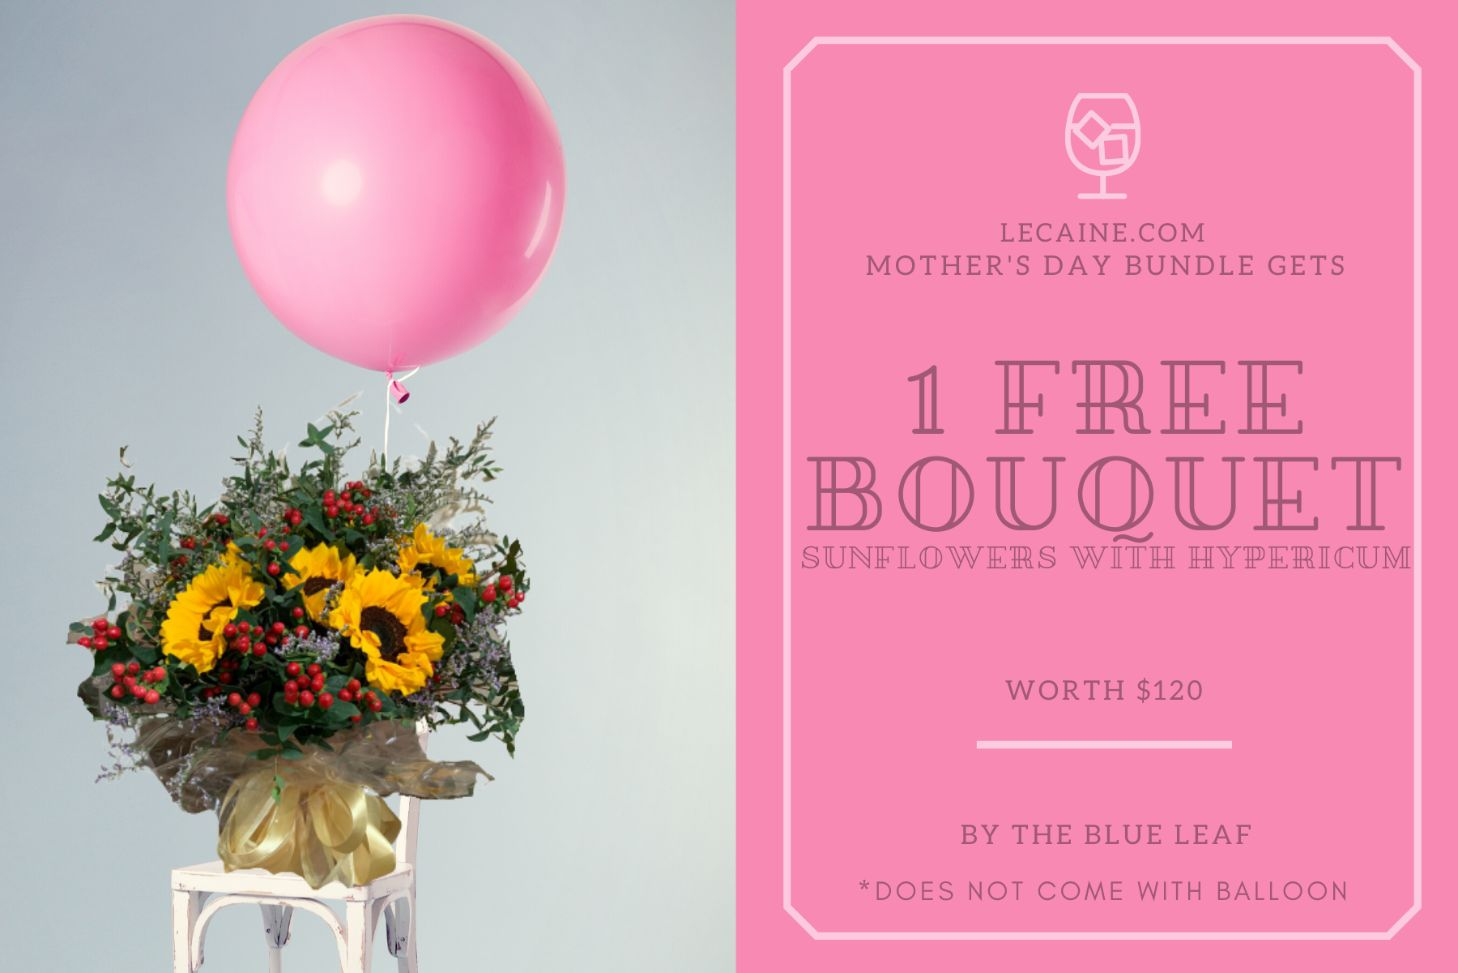 Mother's Day Jewellery Gift Voucher Valued at $388 Singapore Circuit Breaker Home Delivery Flower Bouquets